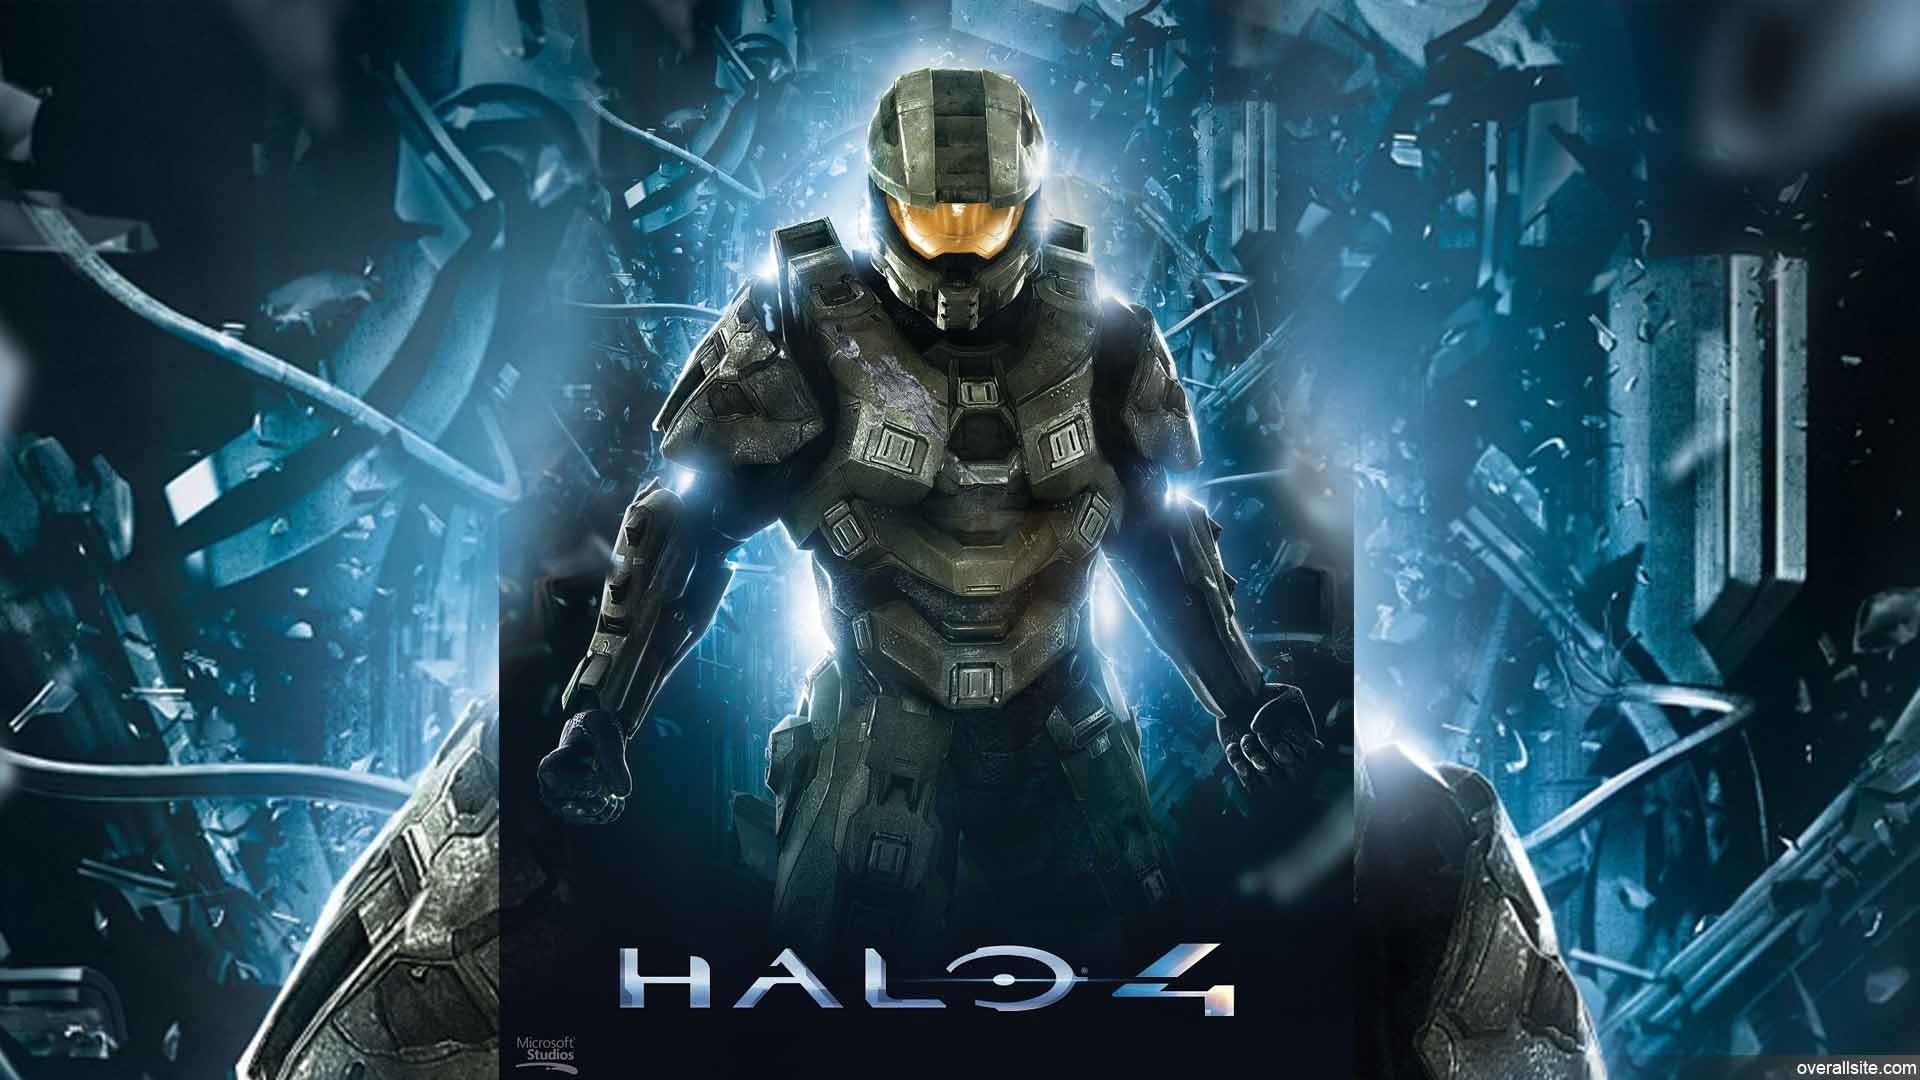 Hd Wallpapers Halo 4 Wallpapers Download 11778 Hd Wallpapers Was .